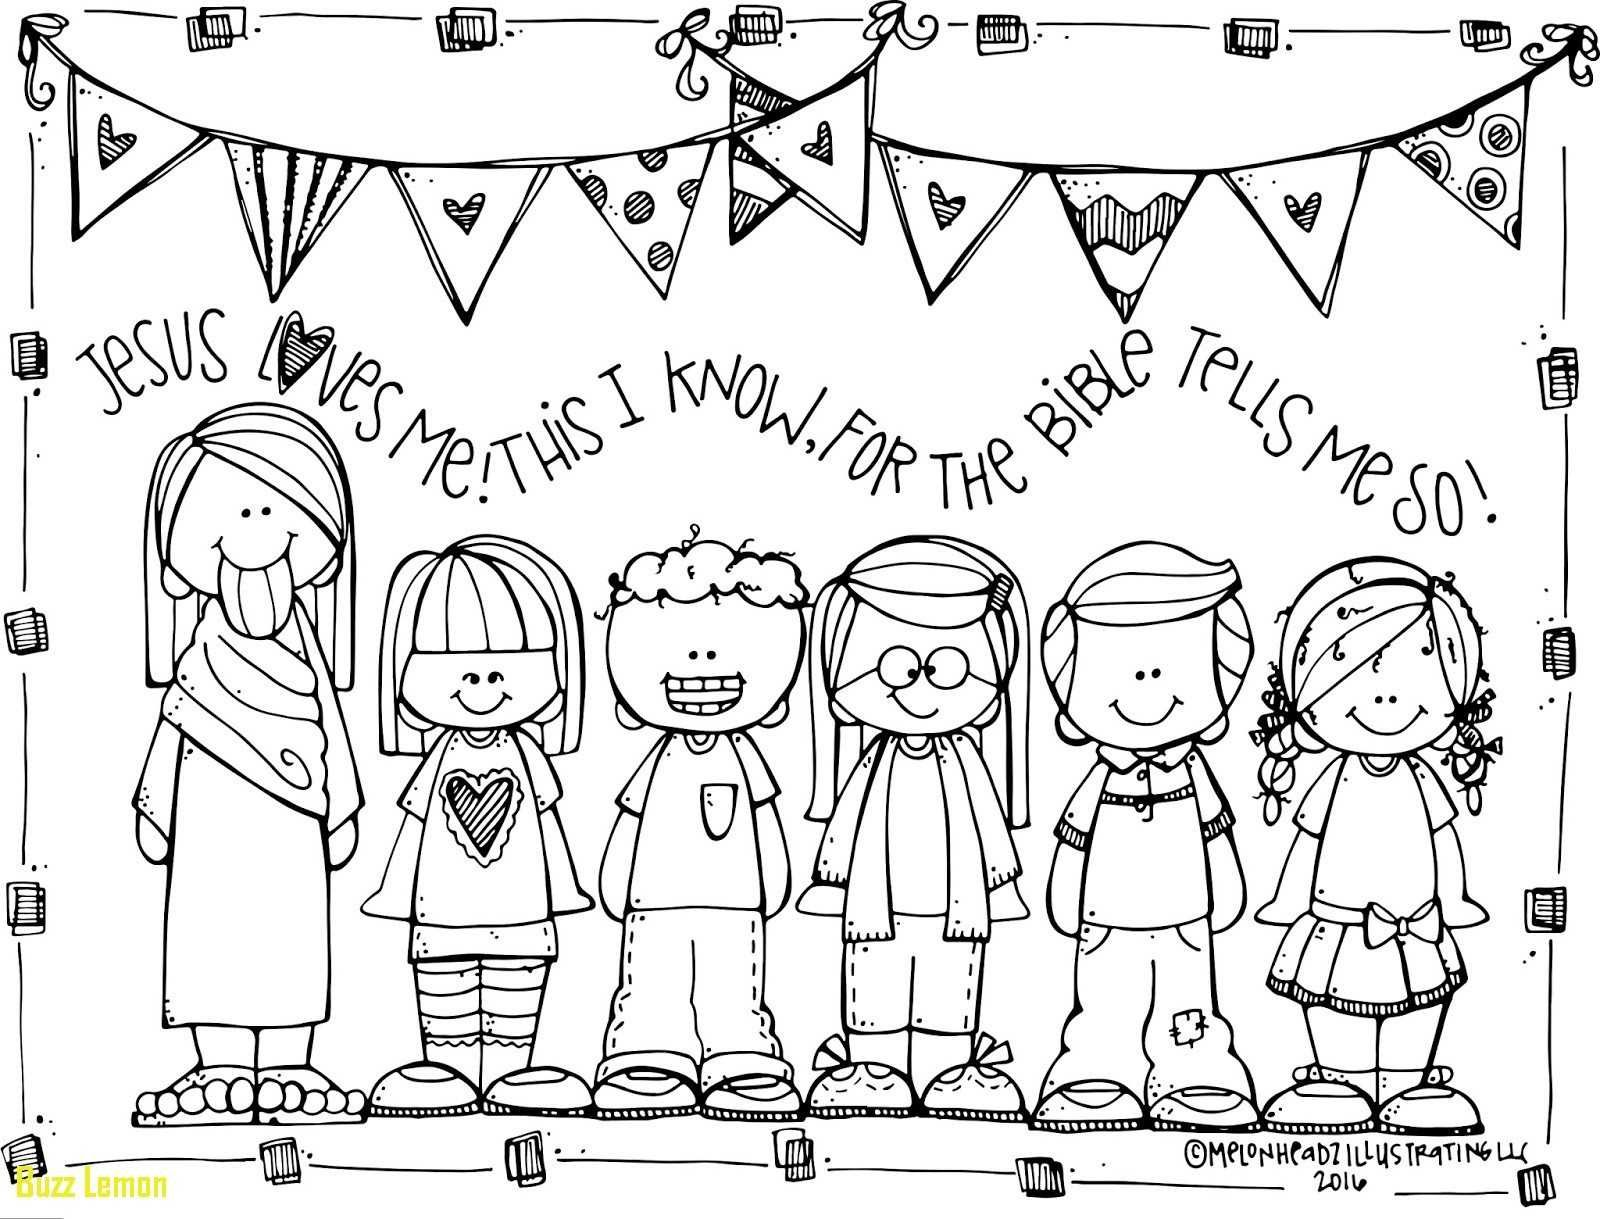 Jesus Loves You Coloring Page Sunday School Coloring Pages Jesus Coloring Pages Preschool Coloring Pages